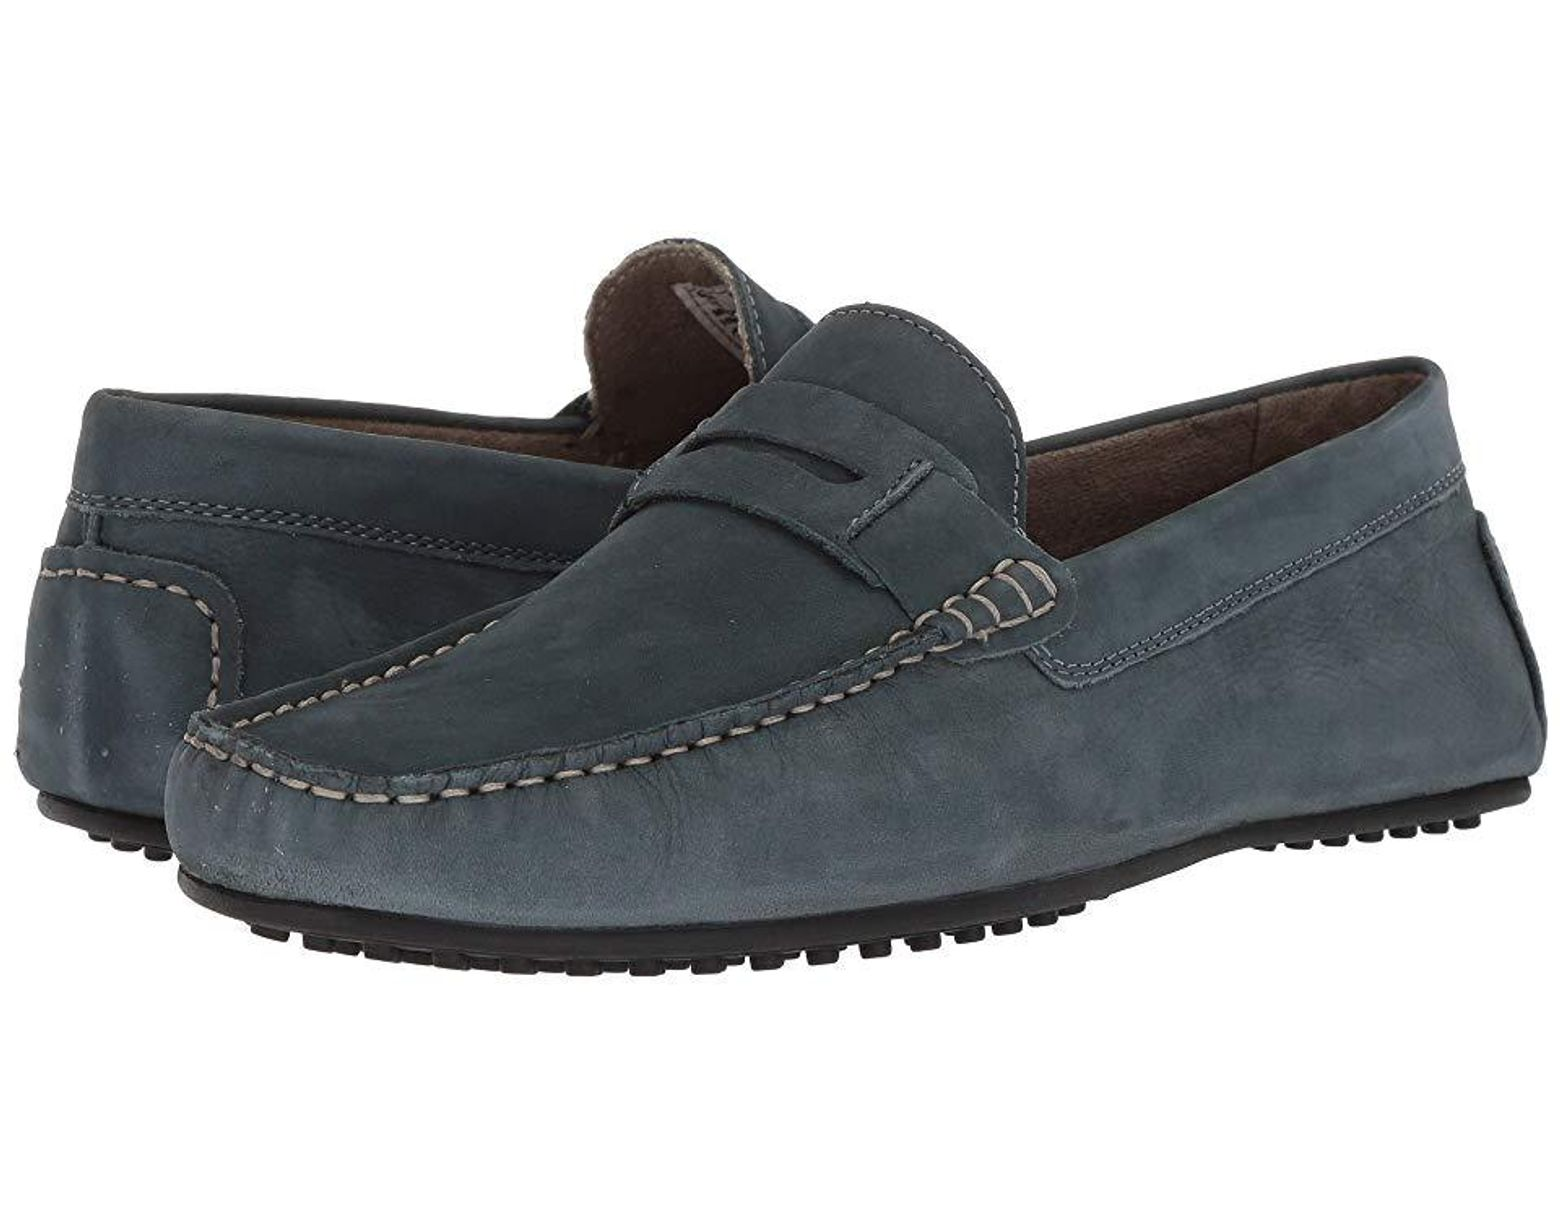 Hush Puppies VASTUS PENNY Mens Slip On Casual Moccasin Driving Loafers Shoes